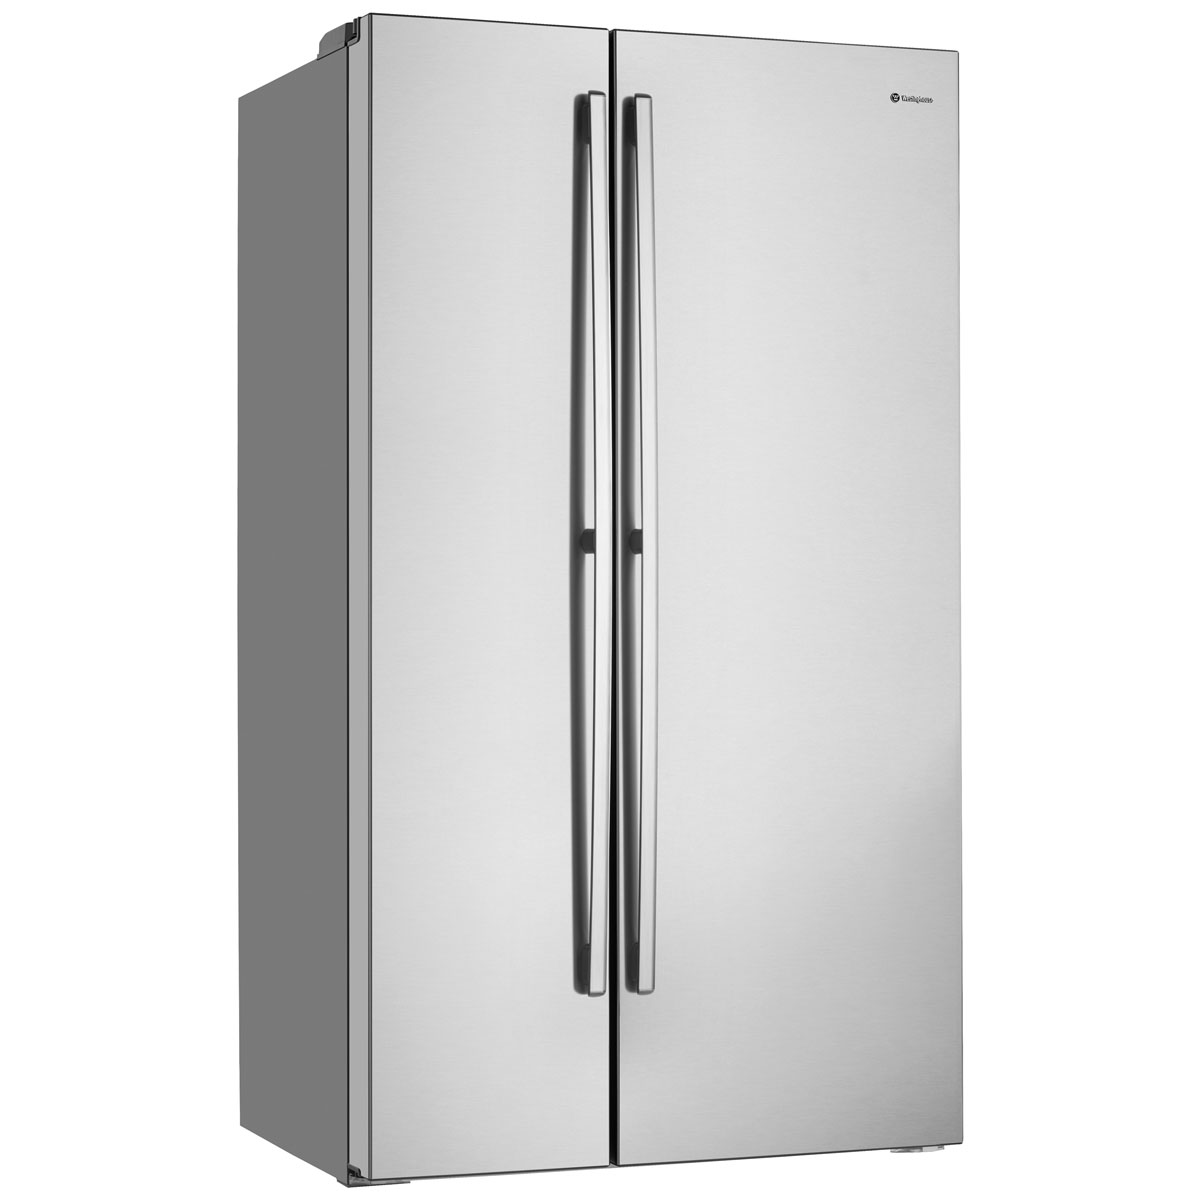 Westinghouse WSE6900SA 690L Side by Side Fridge